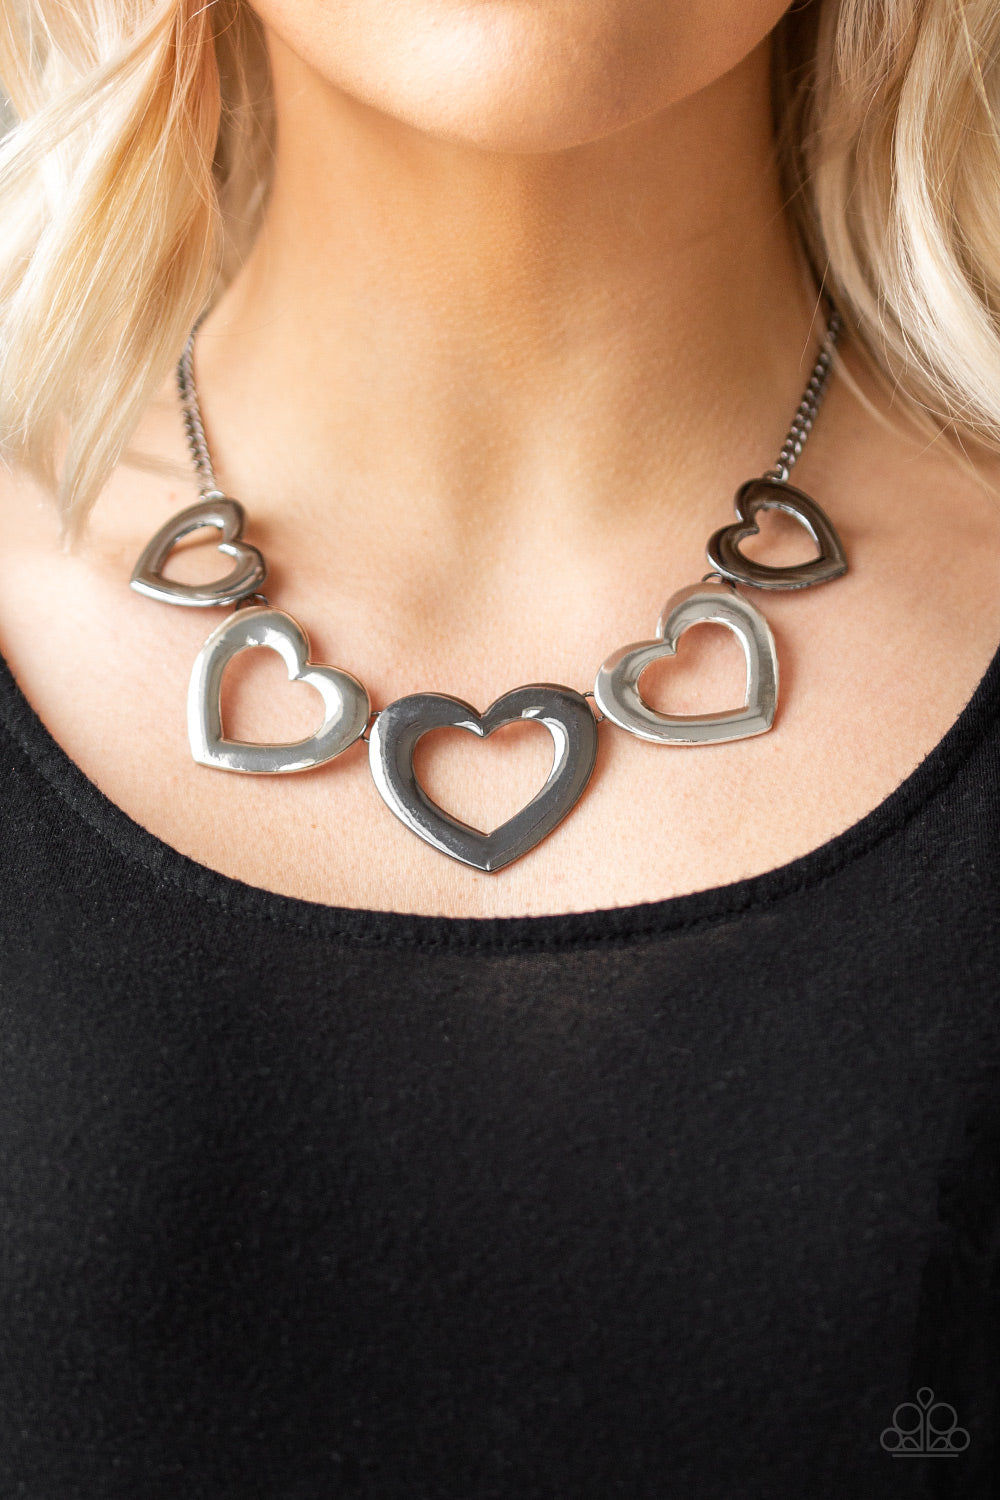 Paparazzi - Hearty Hearts - Multi Necklace Set - Classy Jewels by Linda